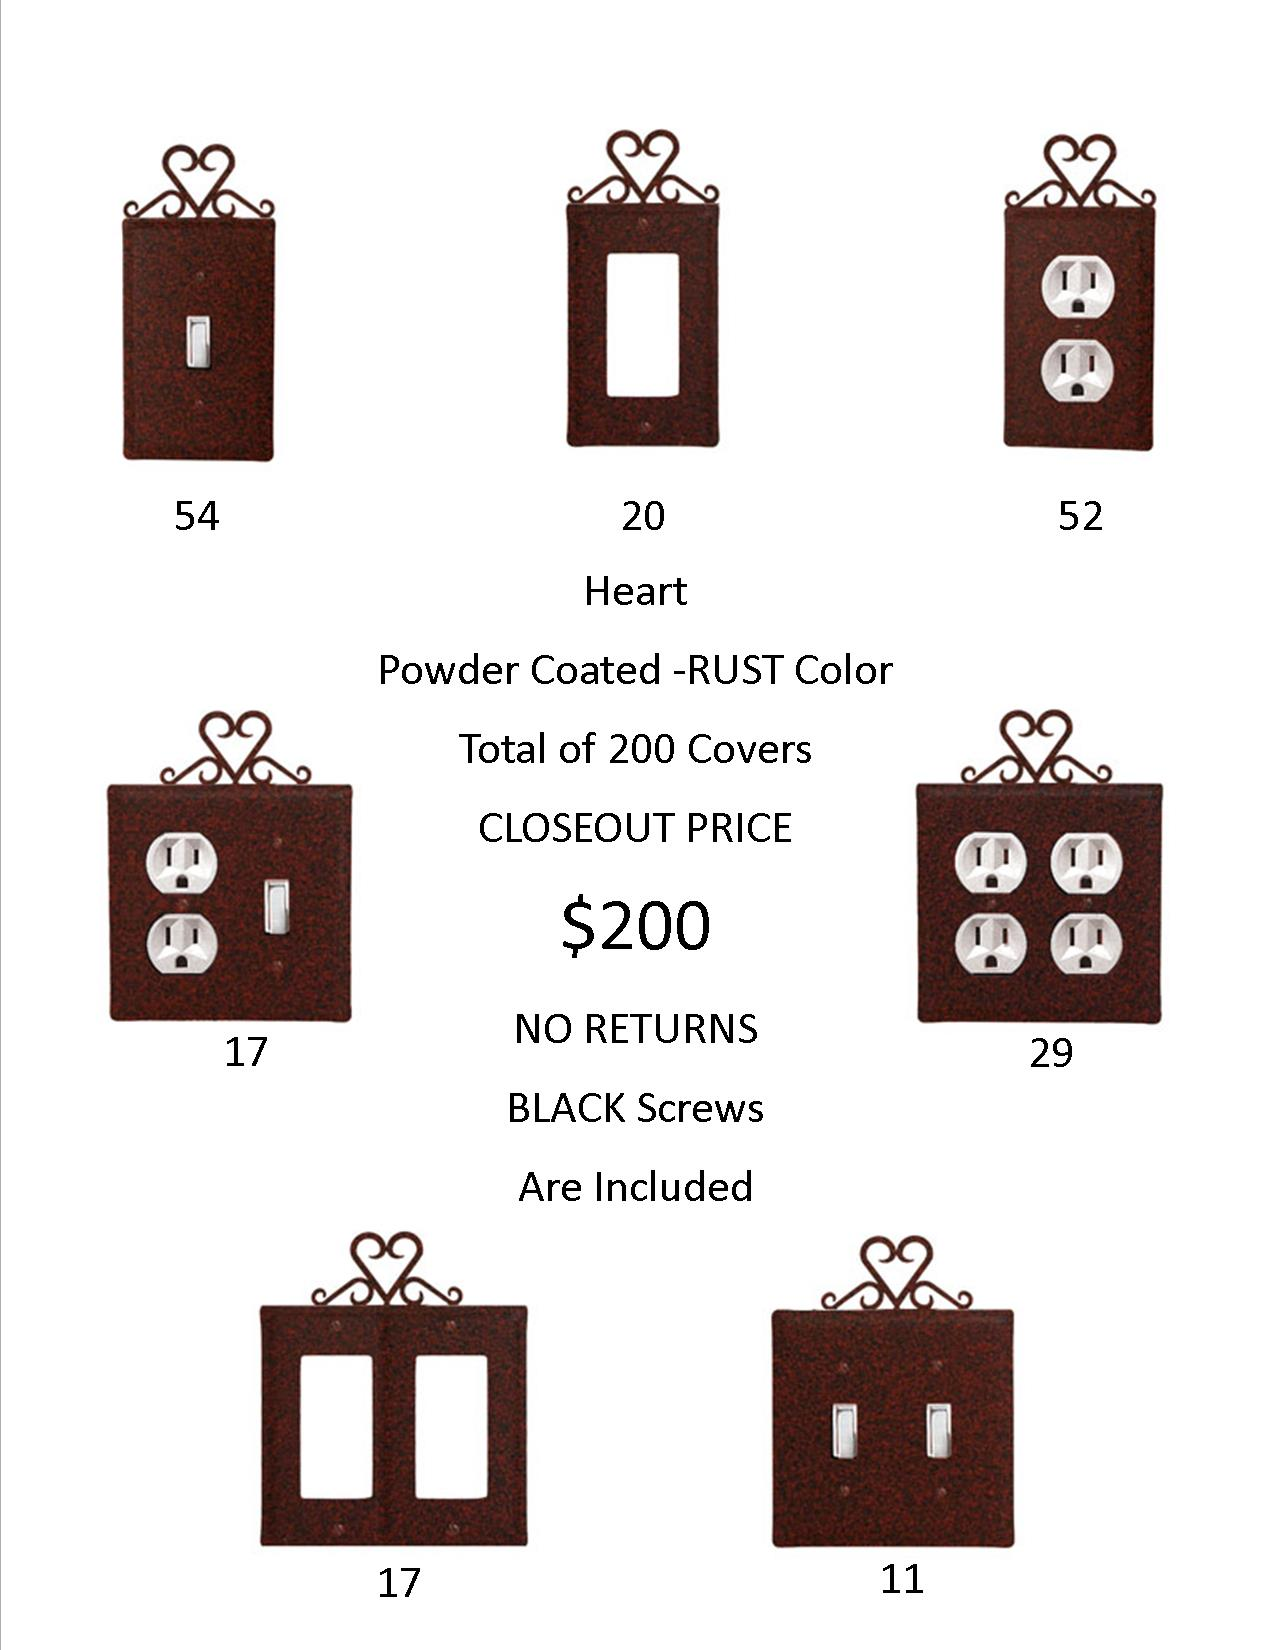 HEART CLOSEOUT - Rust Color ONLY. A total of 200 Electrical Covers for only 1 EACH! ...-...OVER 974  DOLLARS Worth of SAVINGS and that's Wholesale!